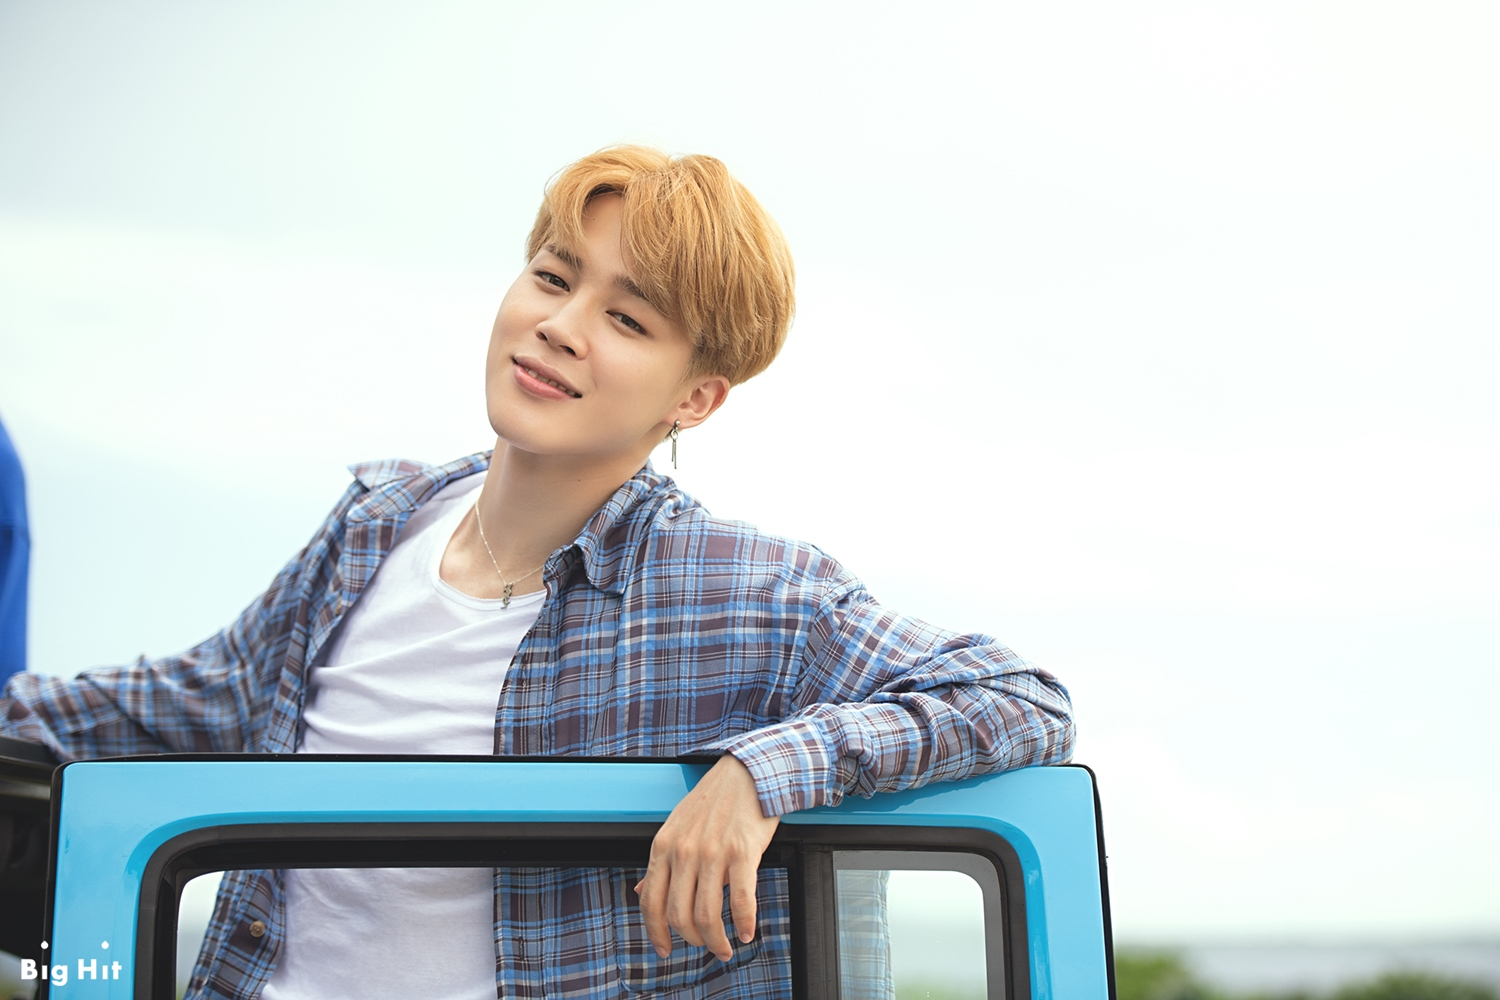 Bts Images Bts Summer Trip To Saipan Hd Wallpaper And Background